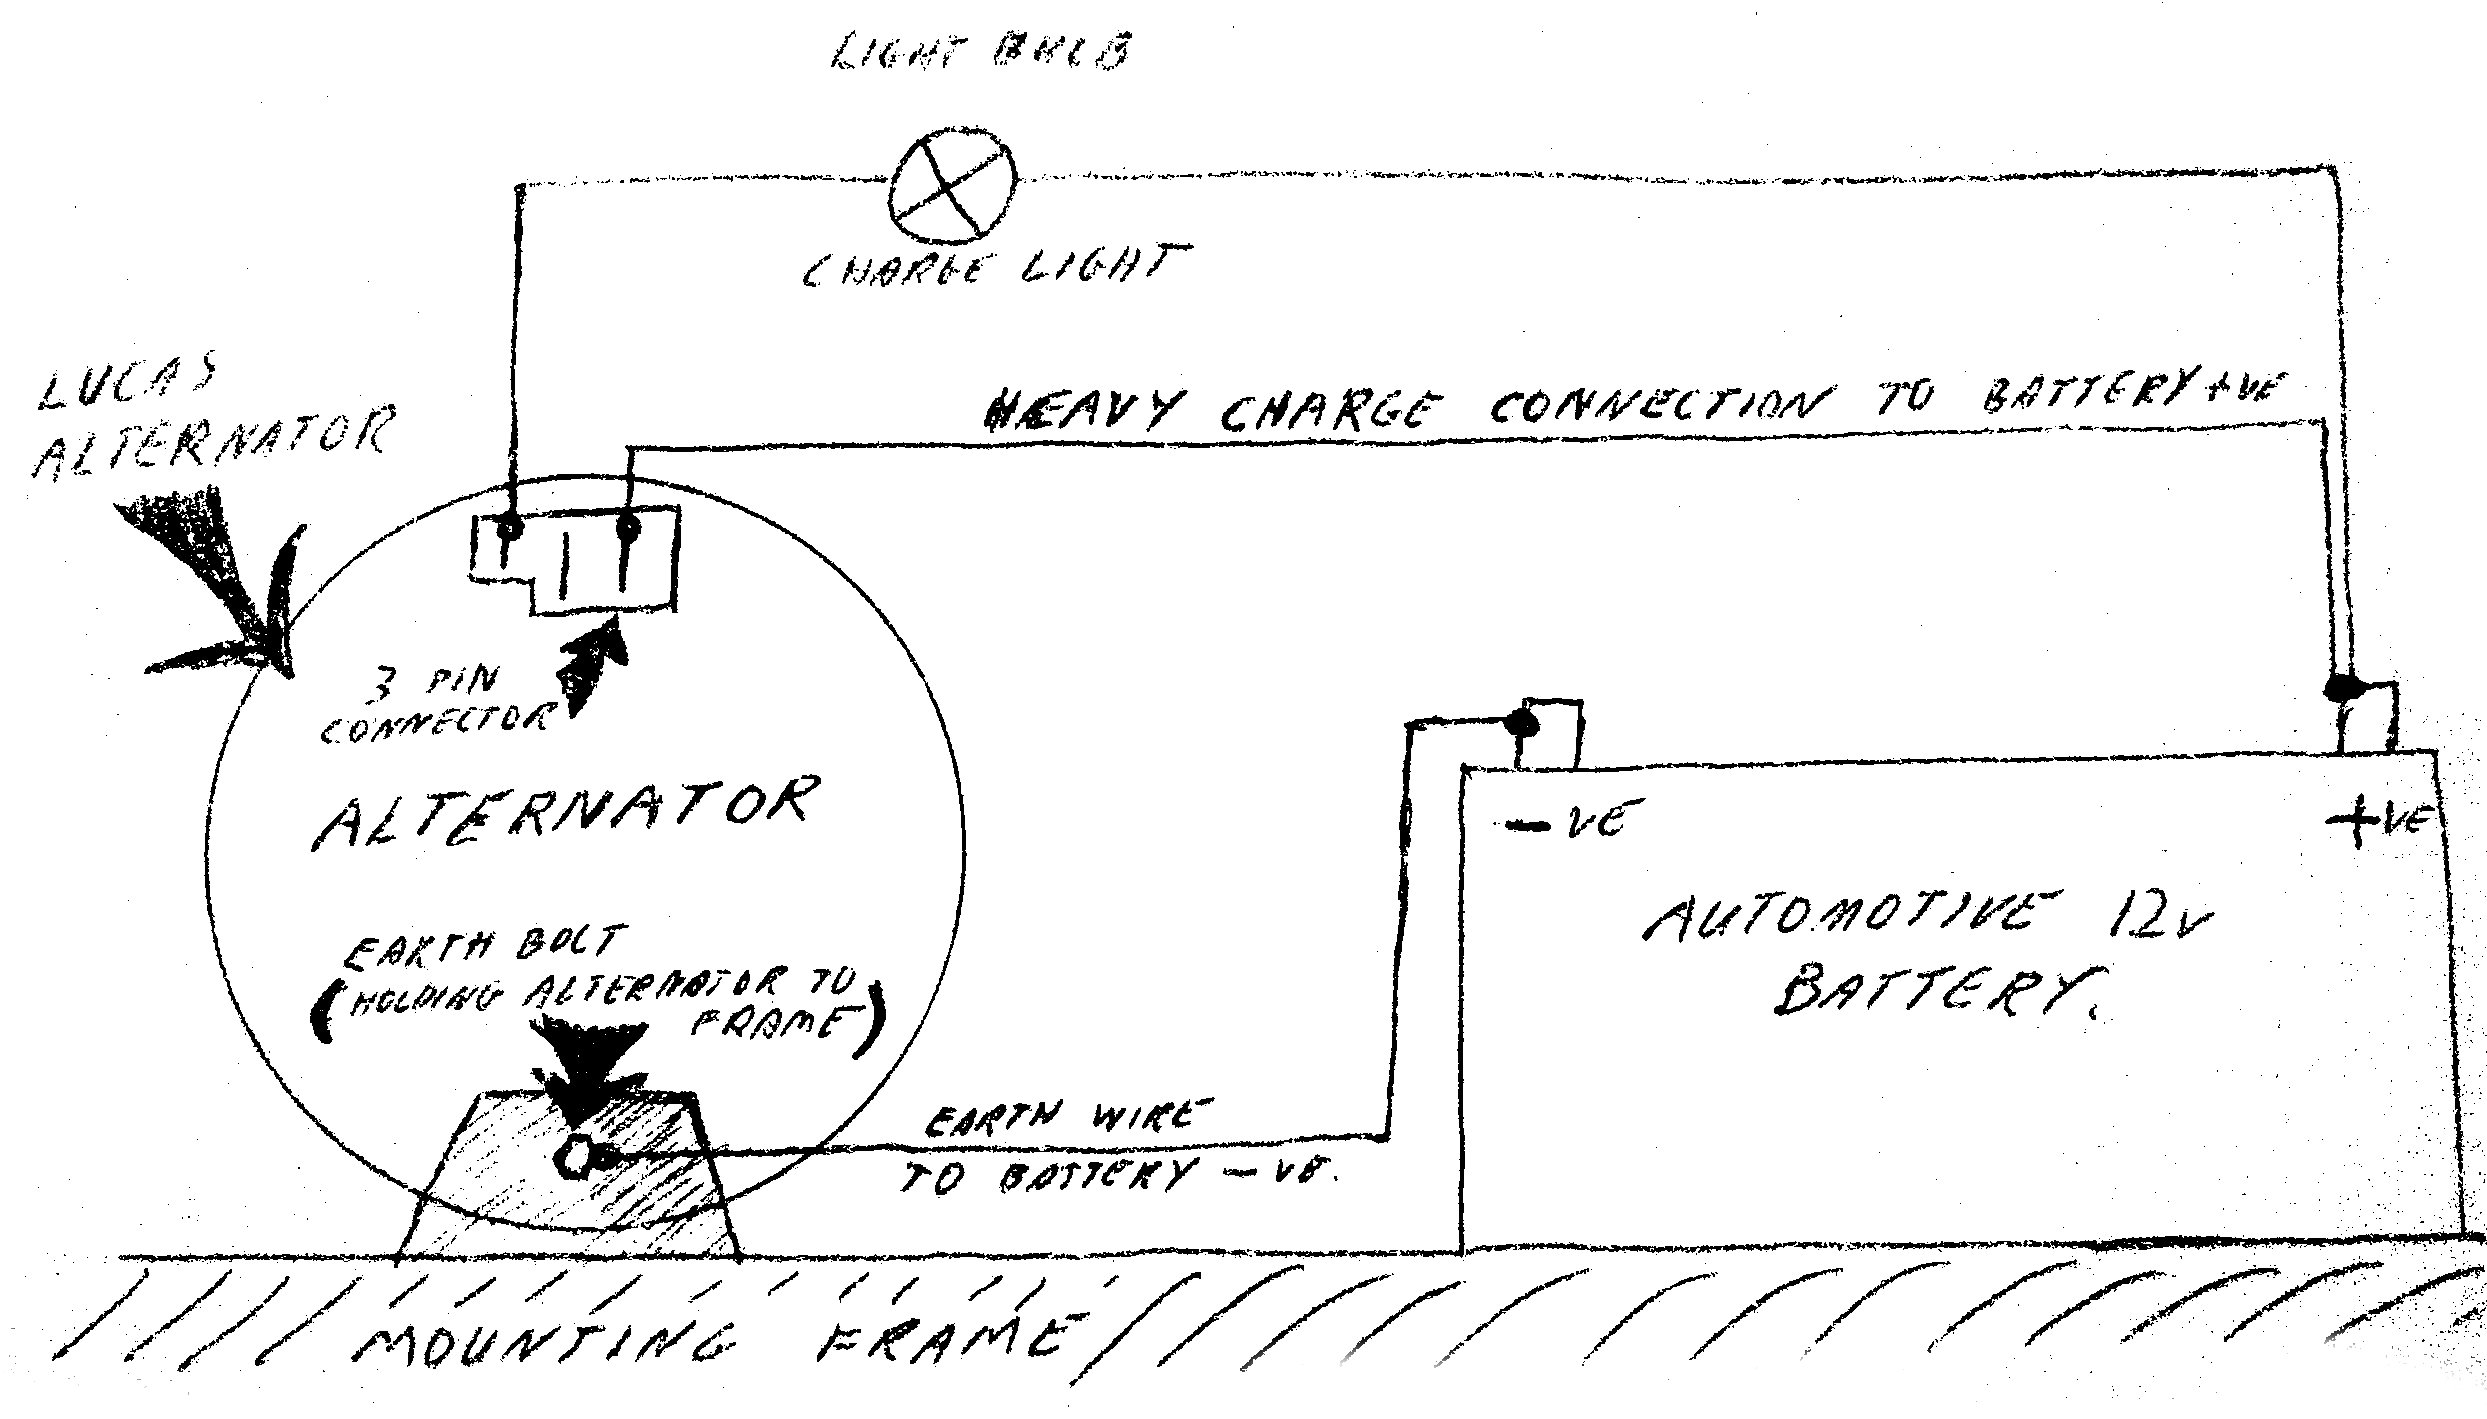 hight resolution of lucas alternator wiring diagram schematics diagramhow to set up an alternator with a stationary engine andy